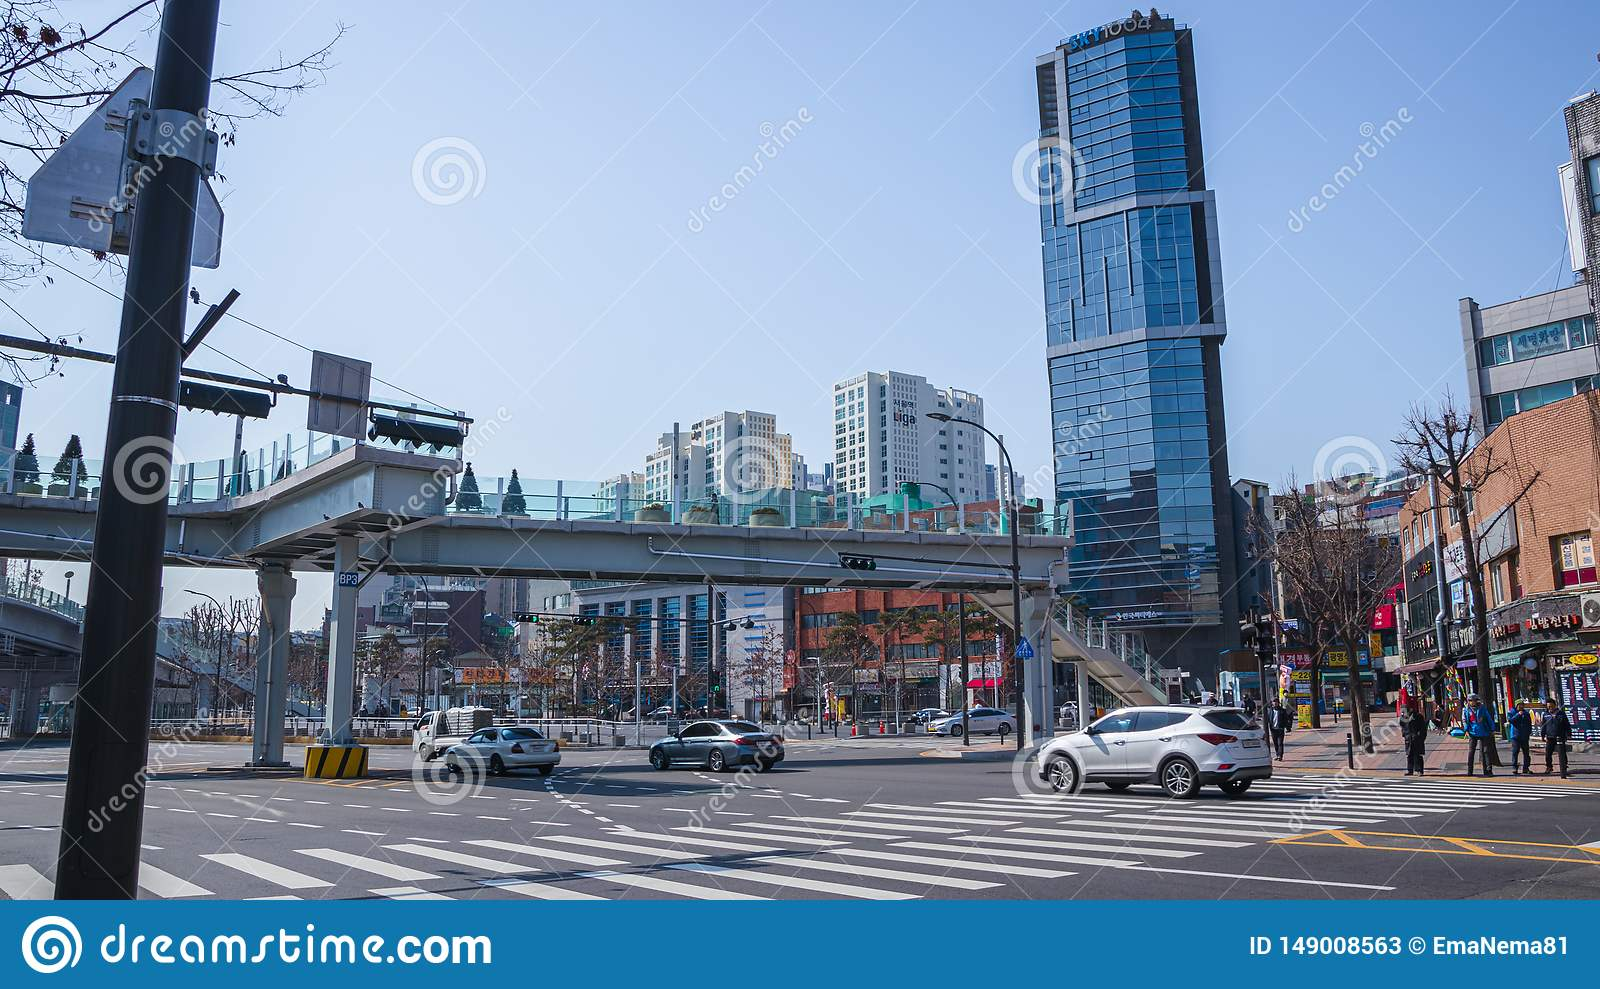 Streets and buildings in Seoul